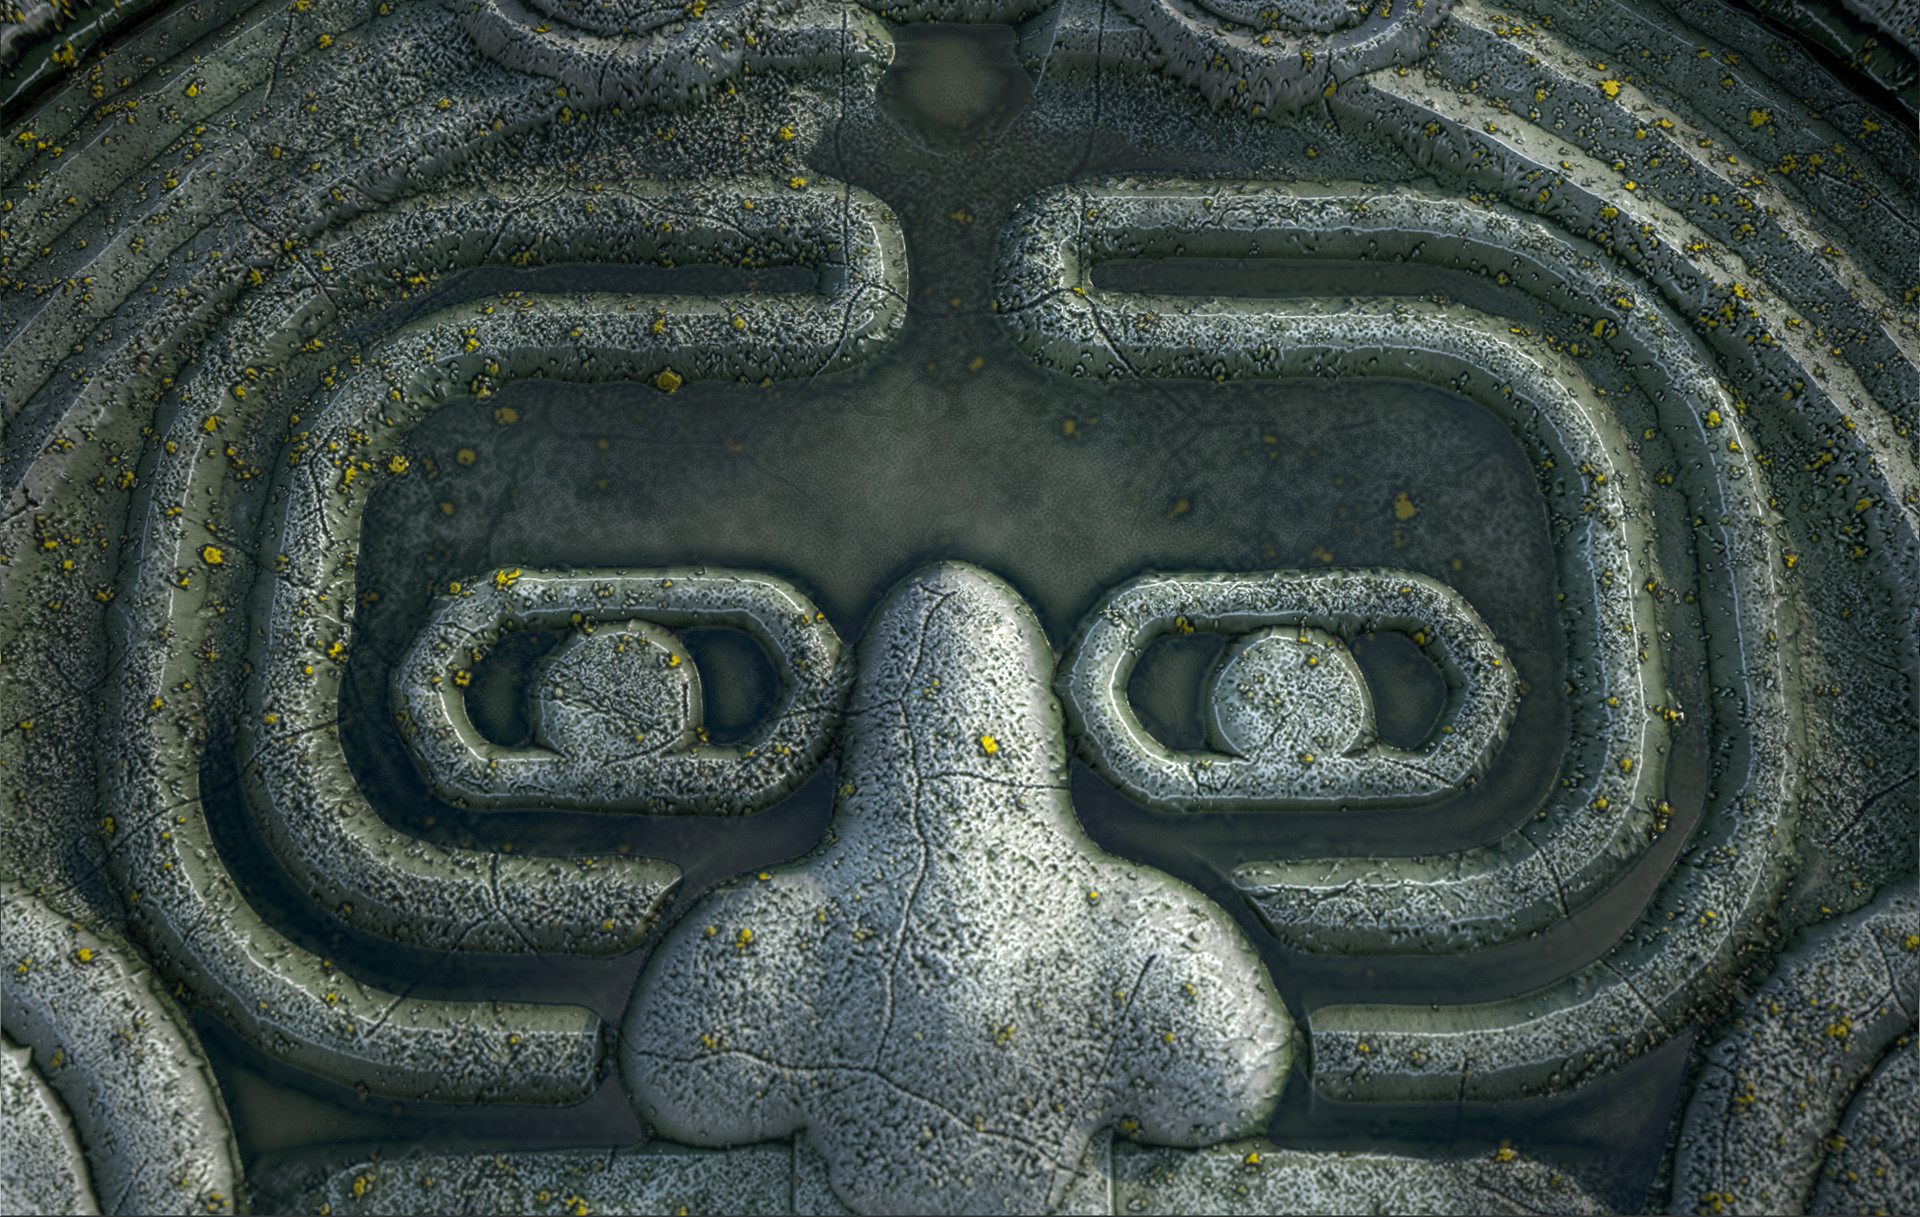 Marcelo souza aztec mask pond4